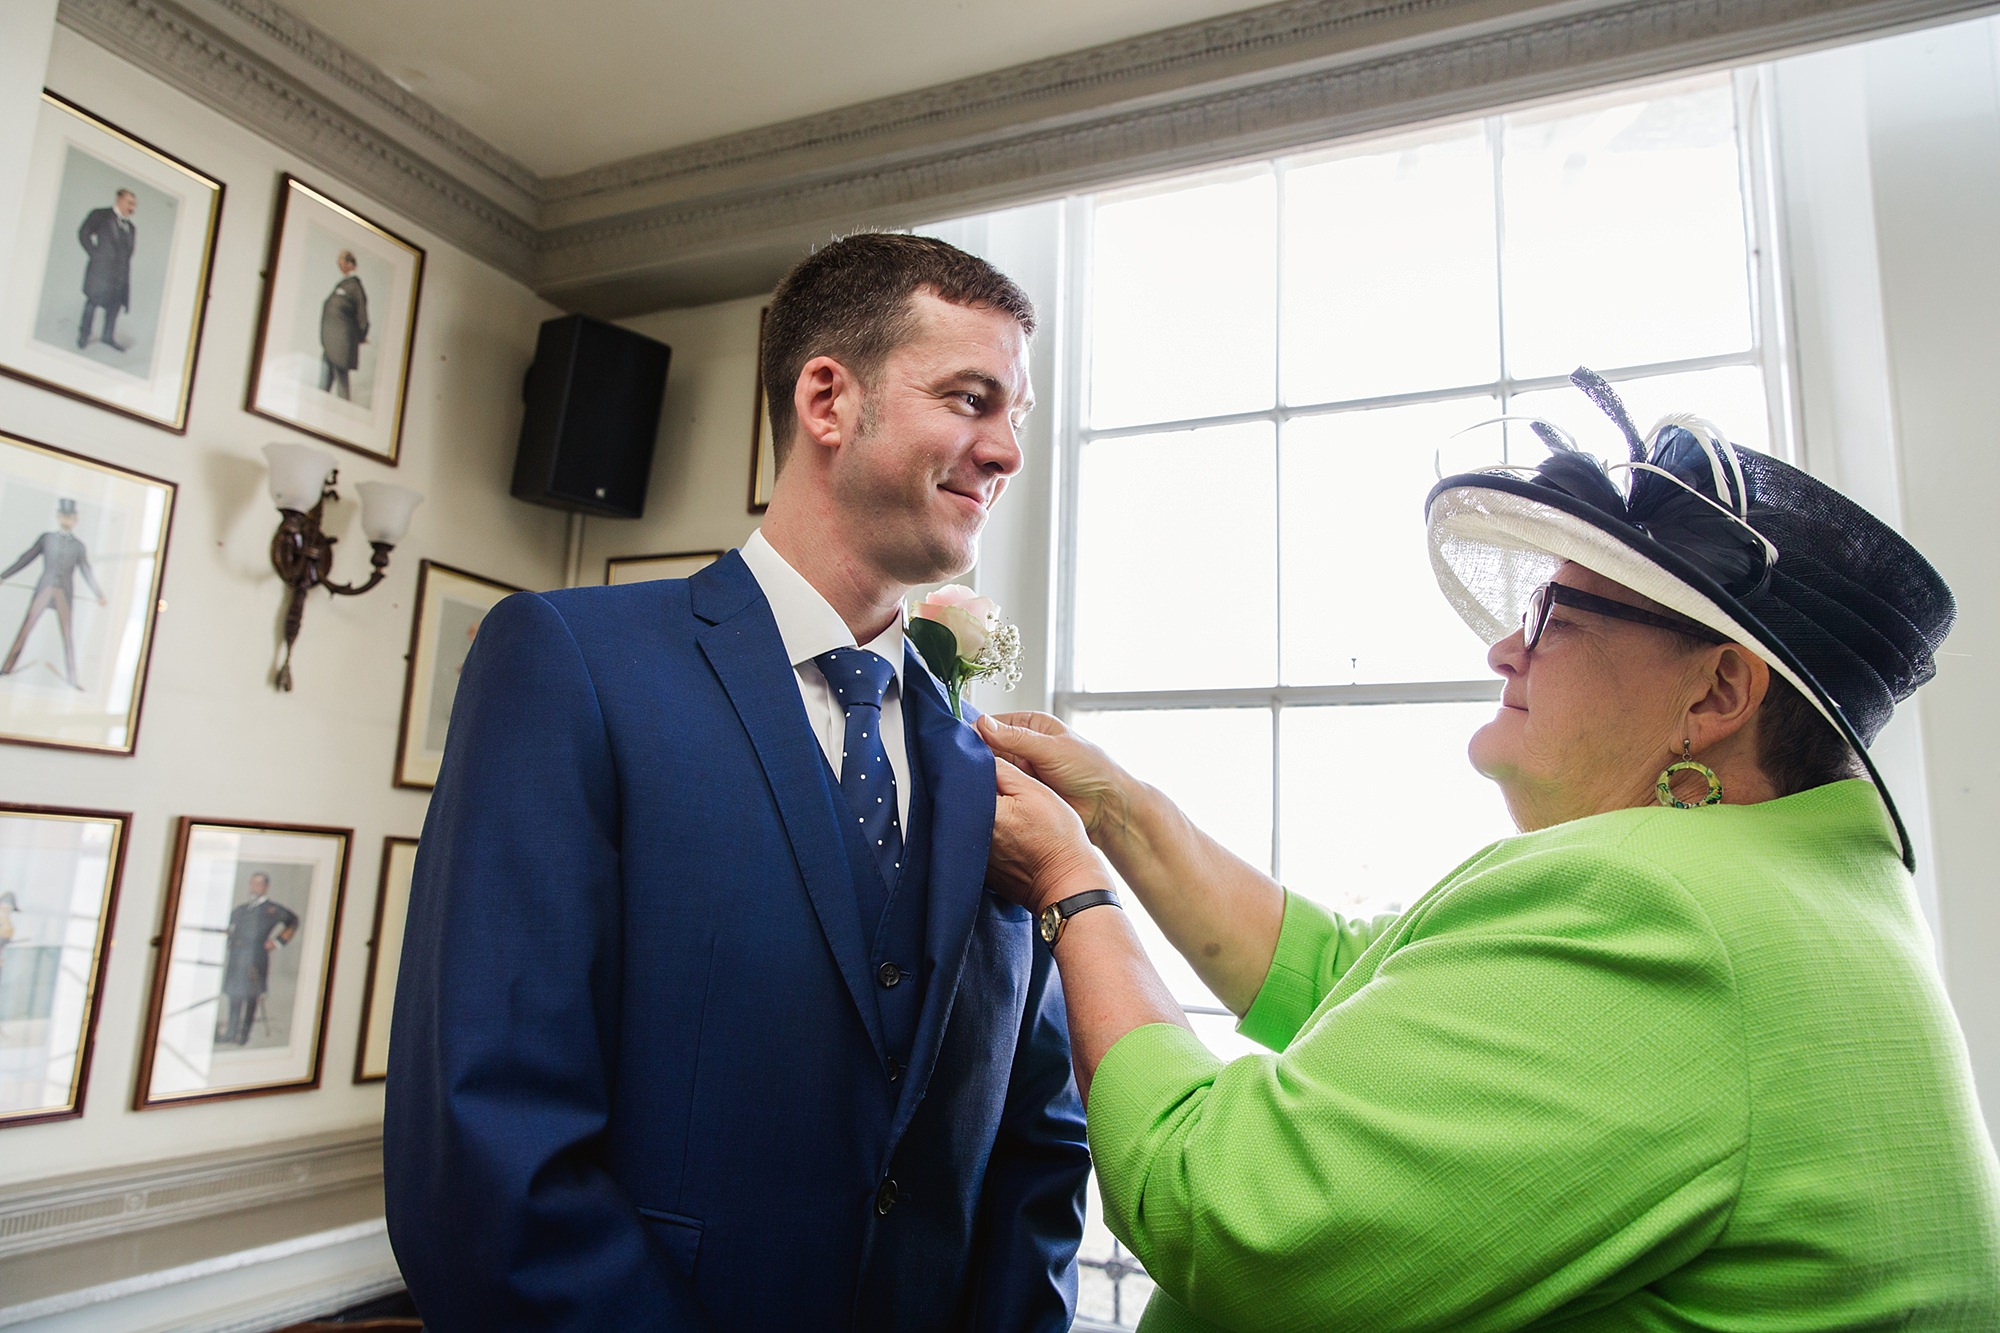 Trafalgar Tavern wedding groom's mum adjusts his buttonhole